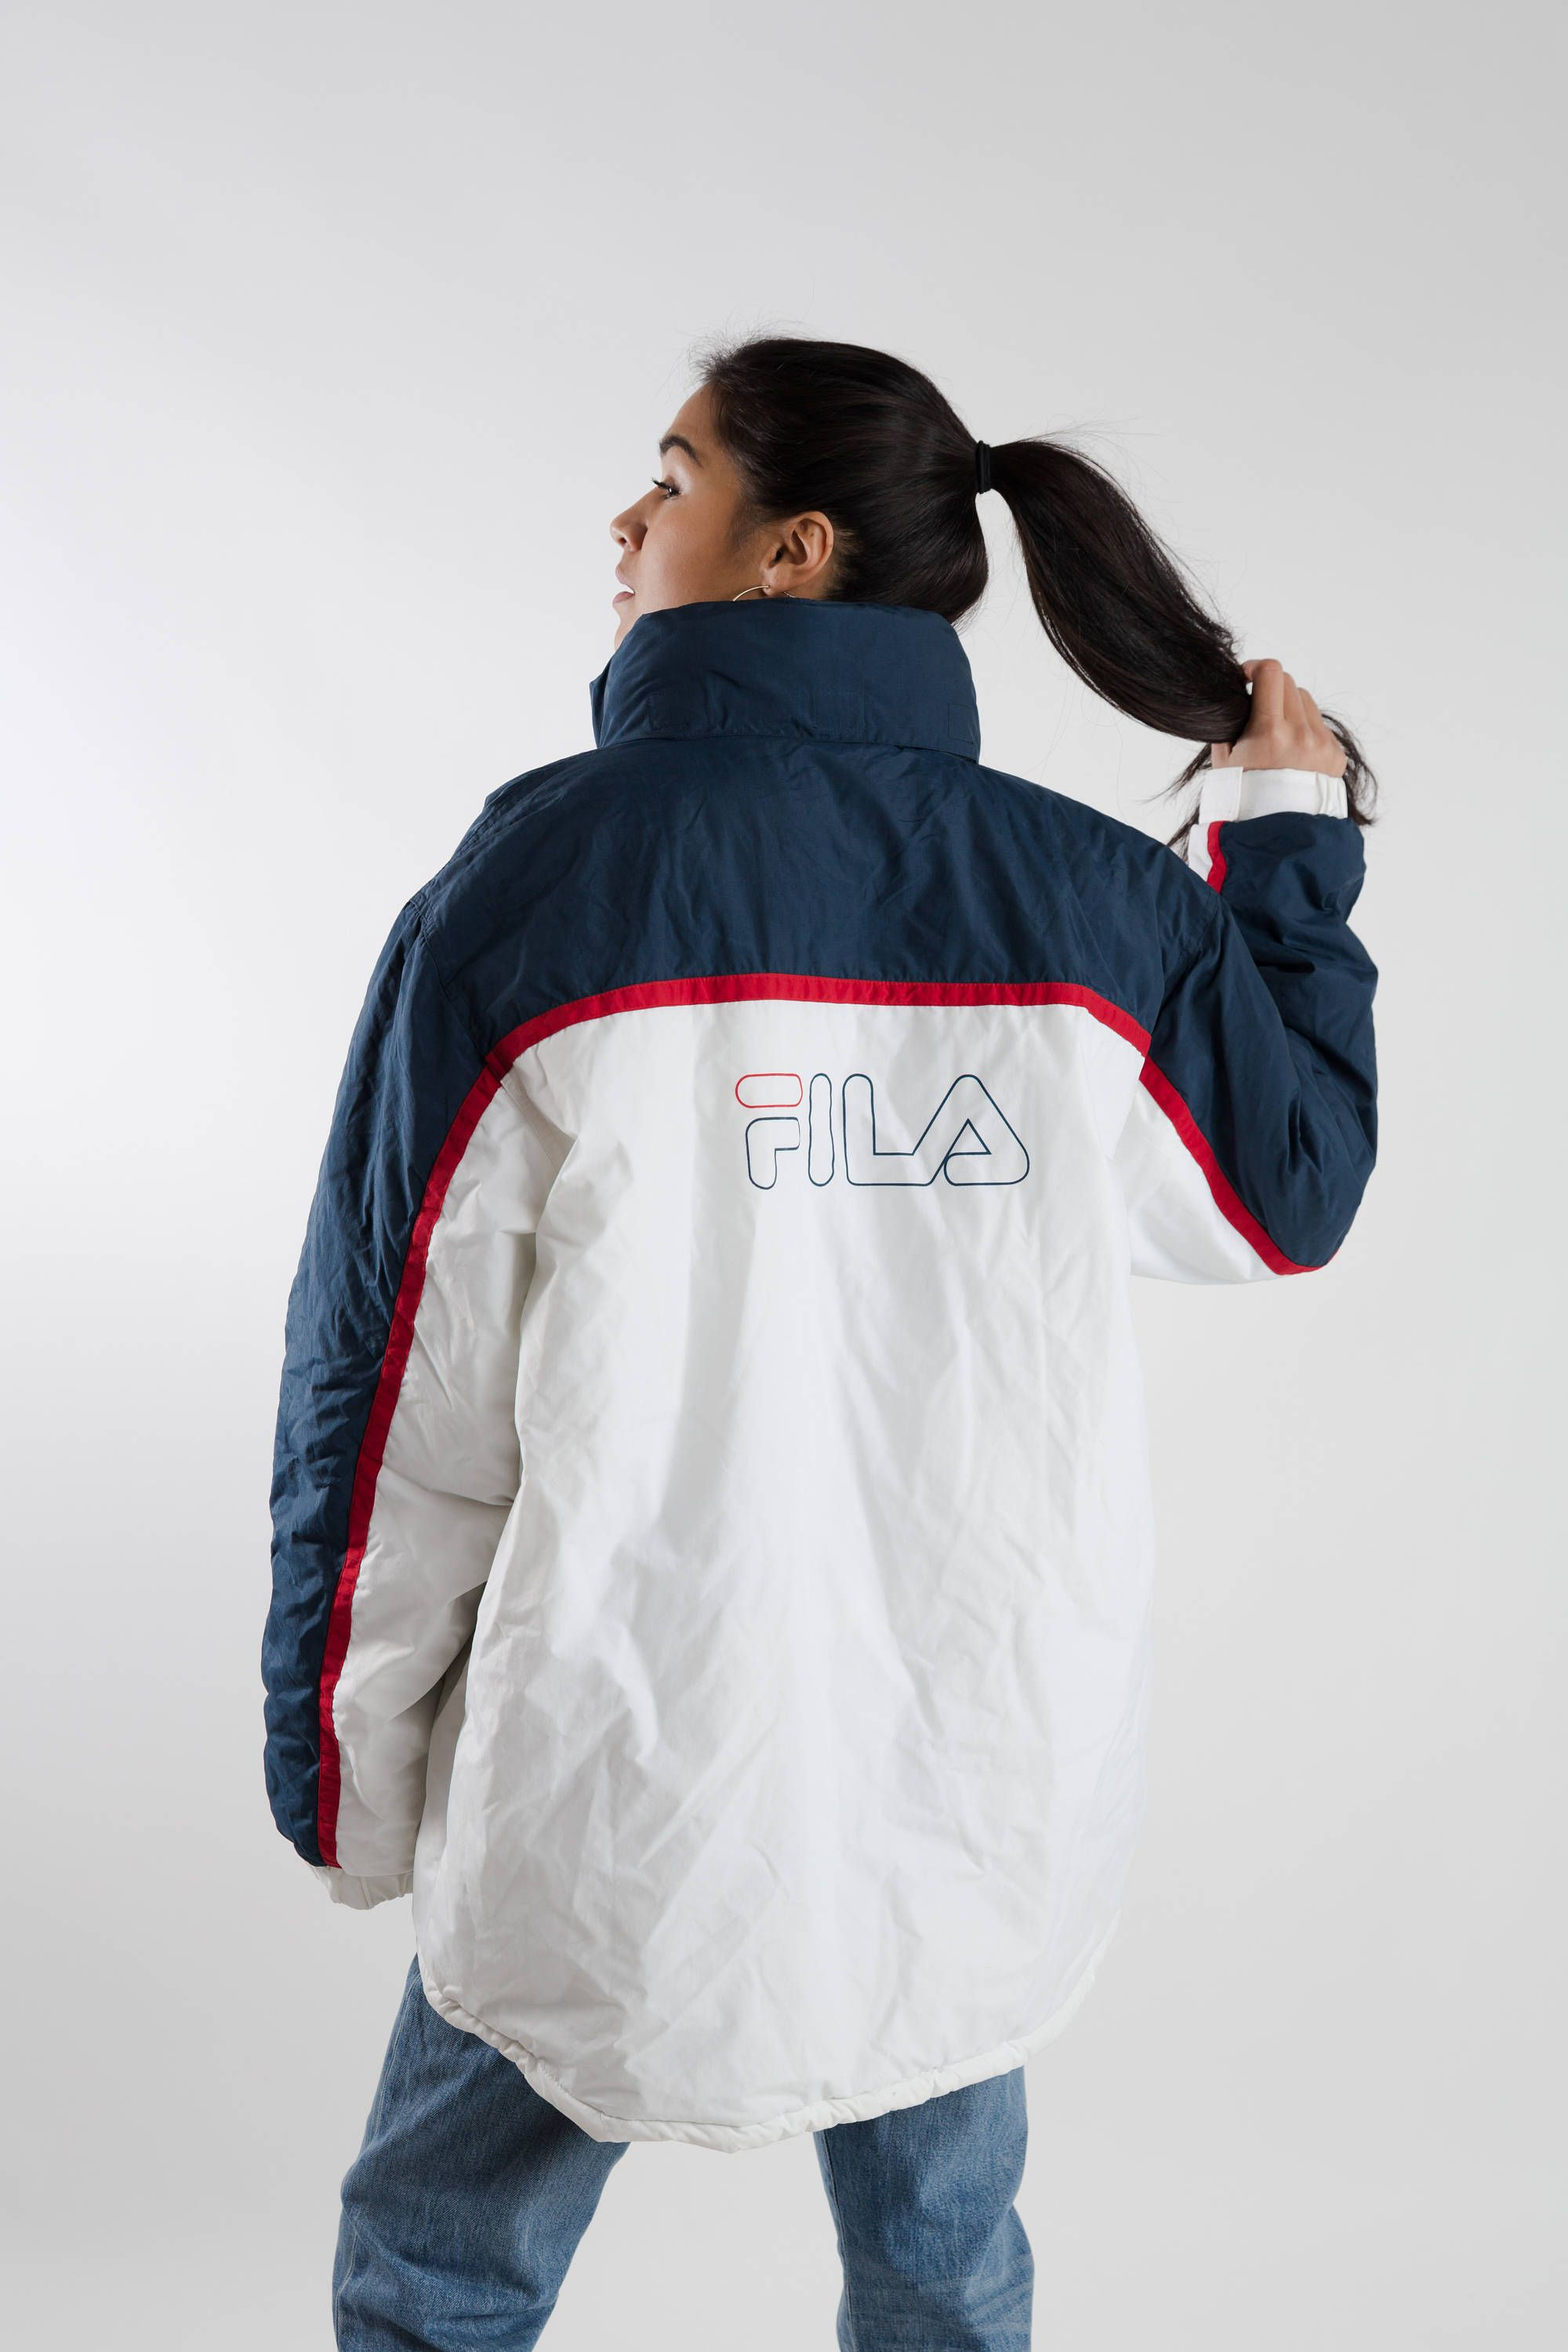 83e33f32e Vintage Fila padded jacket   90s white and blue Fila sports jacket    Oversized women s spellout Fila jacket   Men s winter jacket   Size XXL by  LHITW on ...